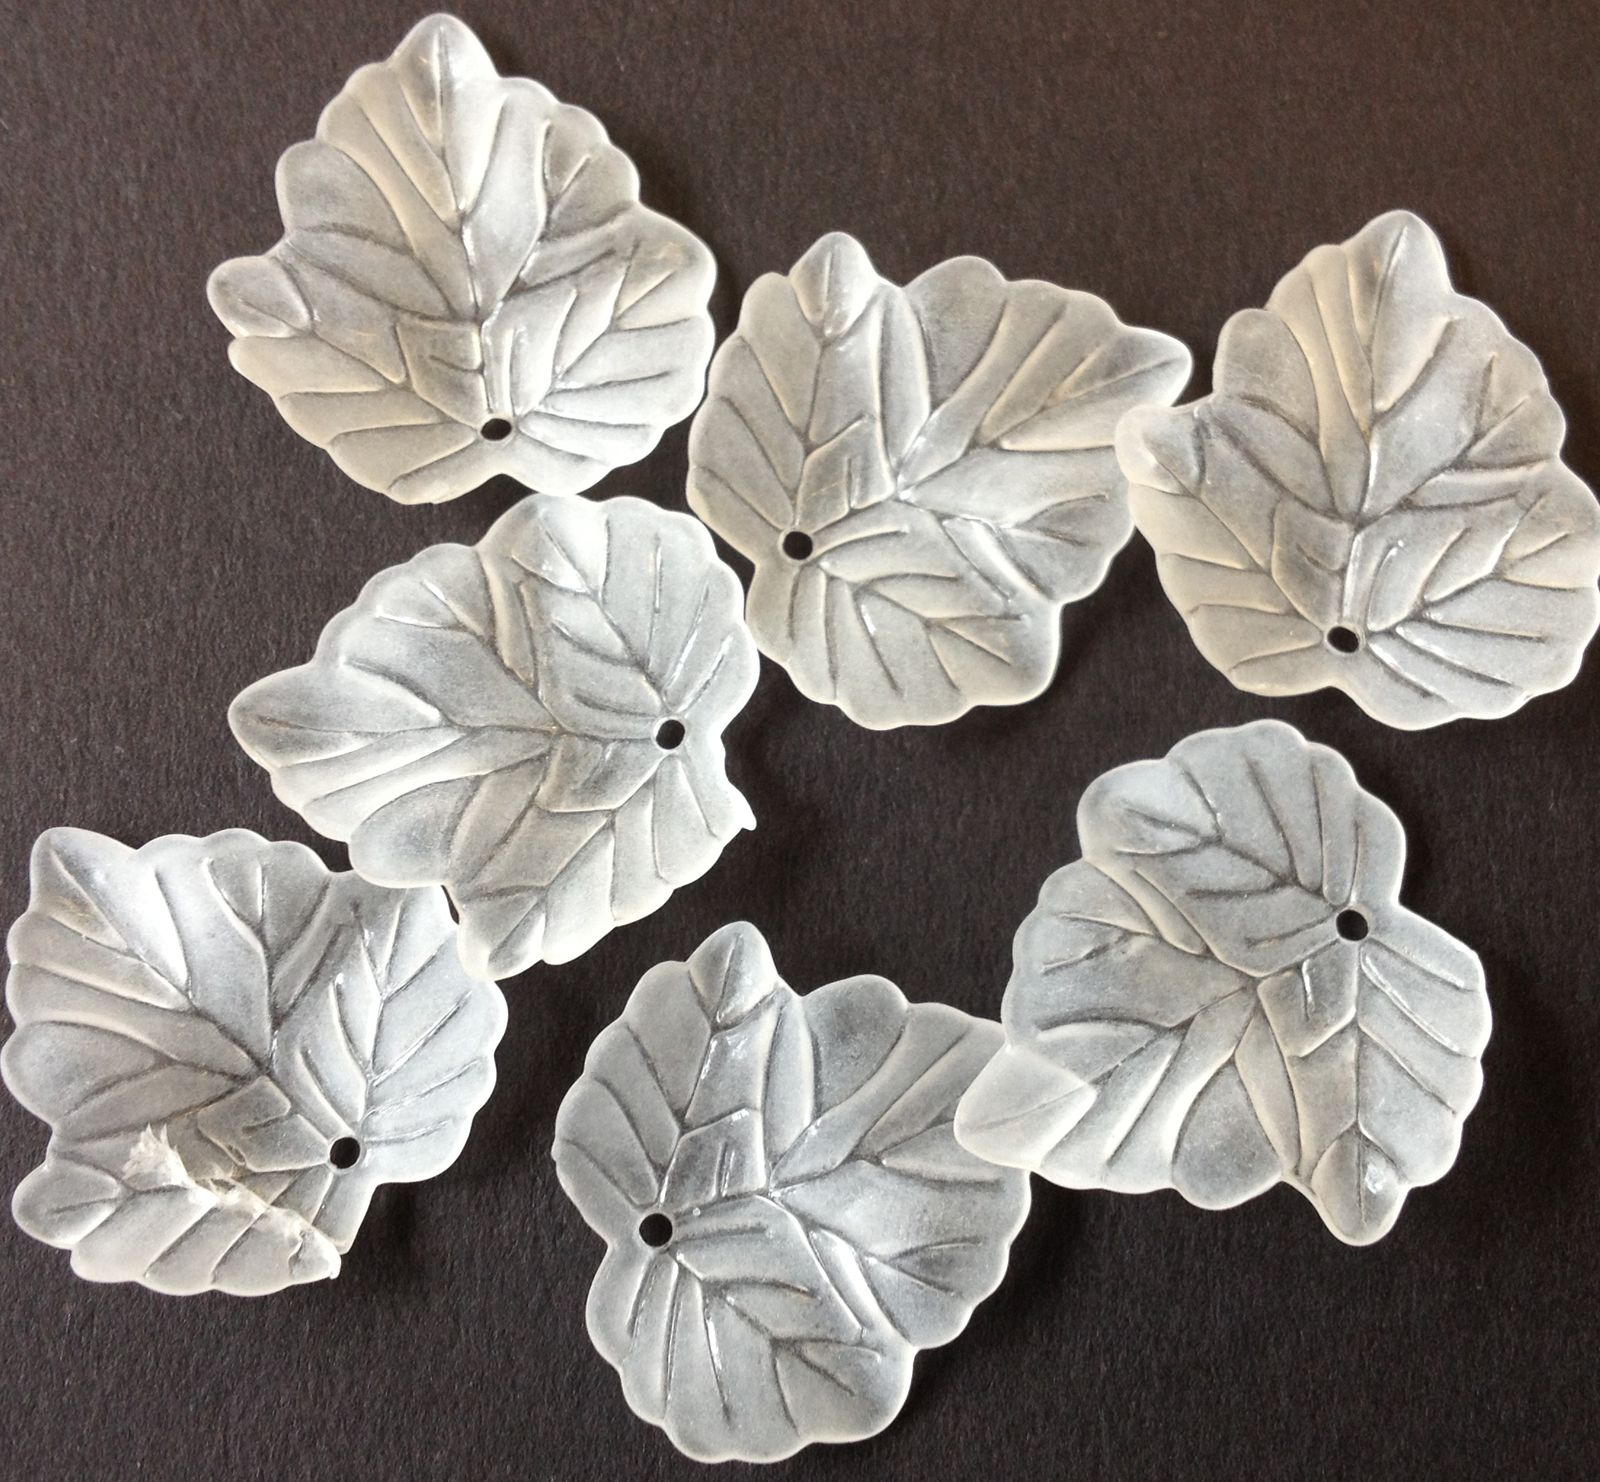 Leaves 32 'Lucite' transparent Acrylic Beads, white 22.5mm